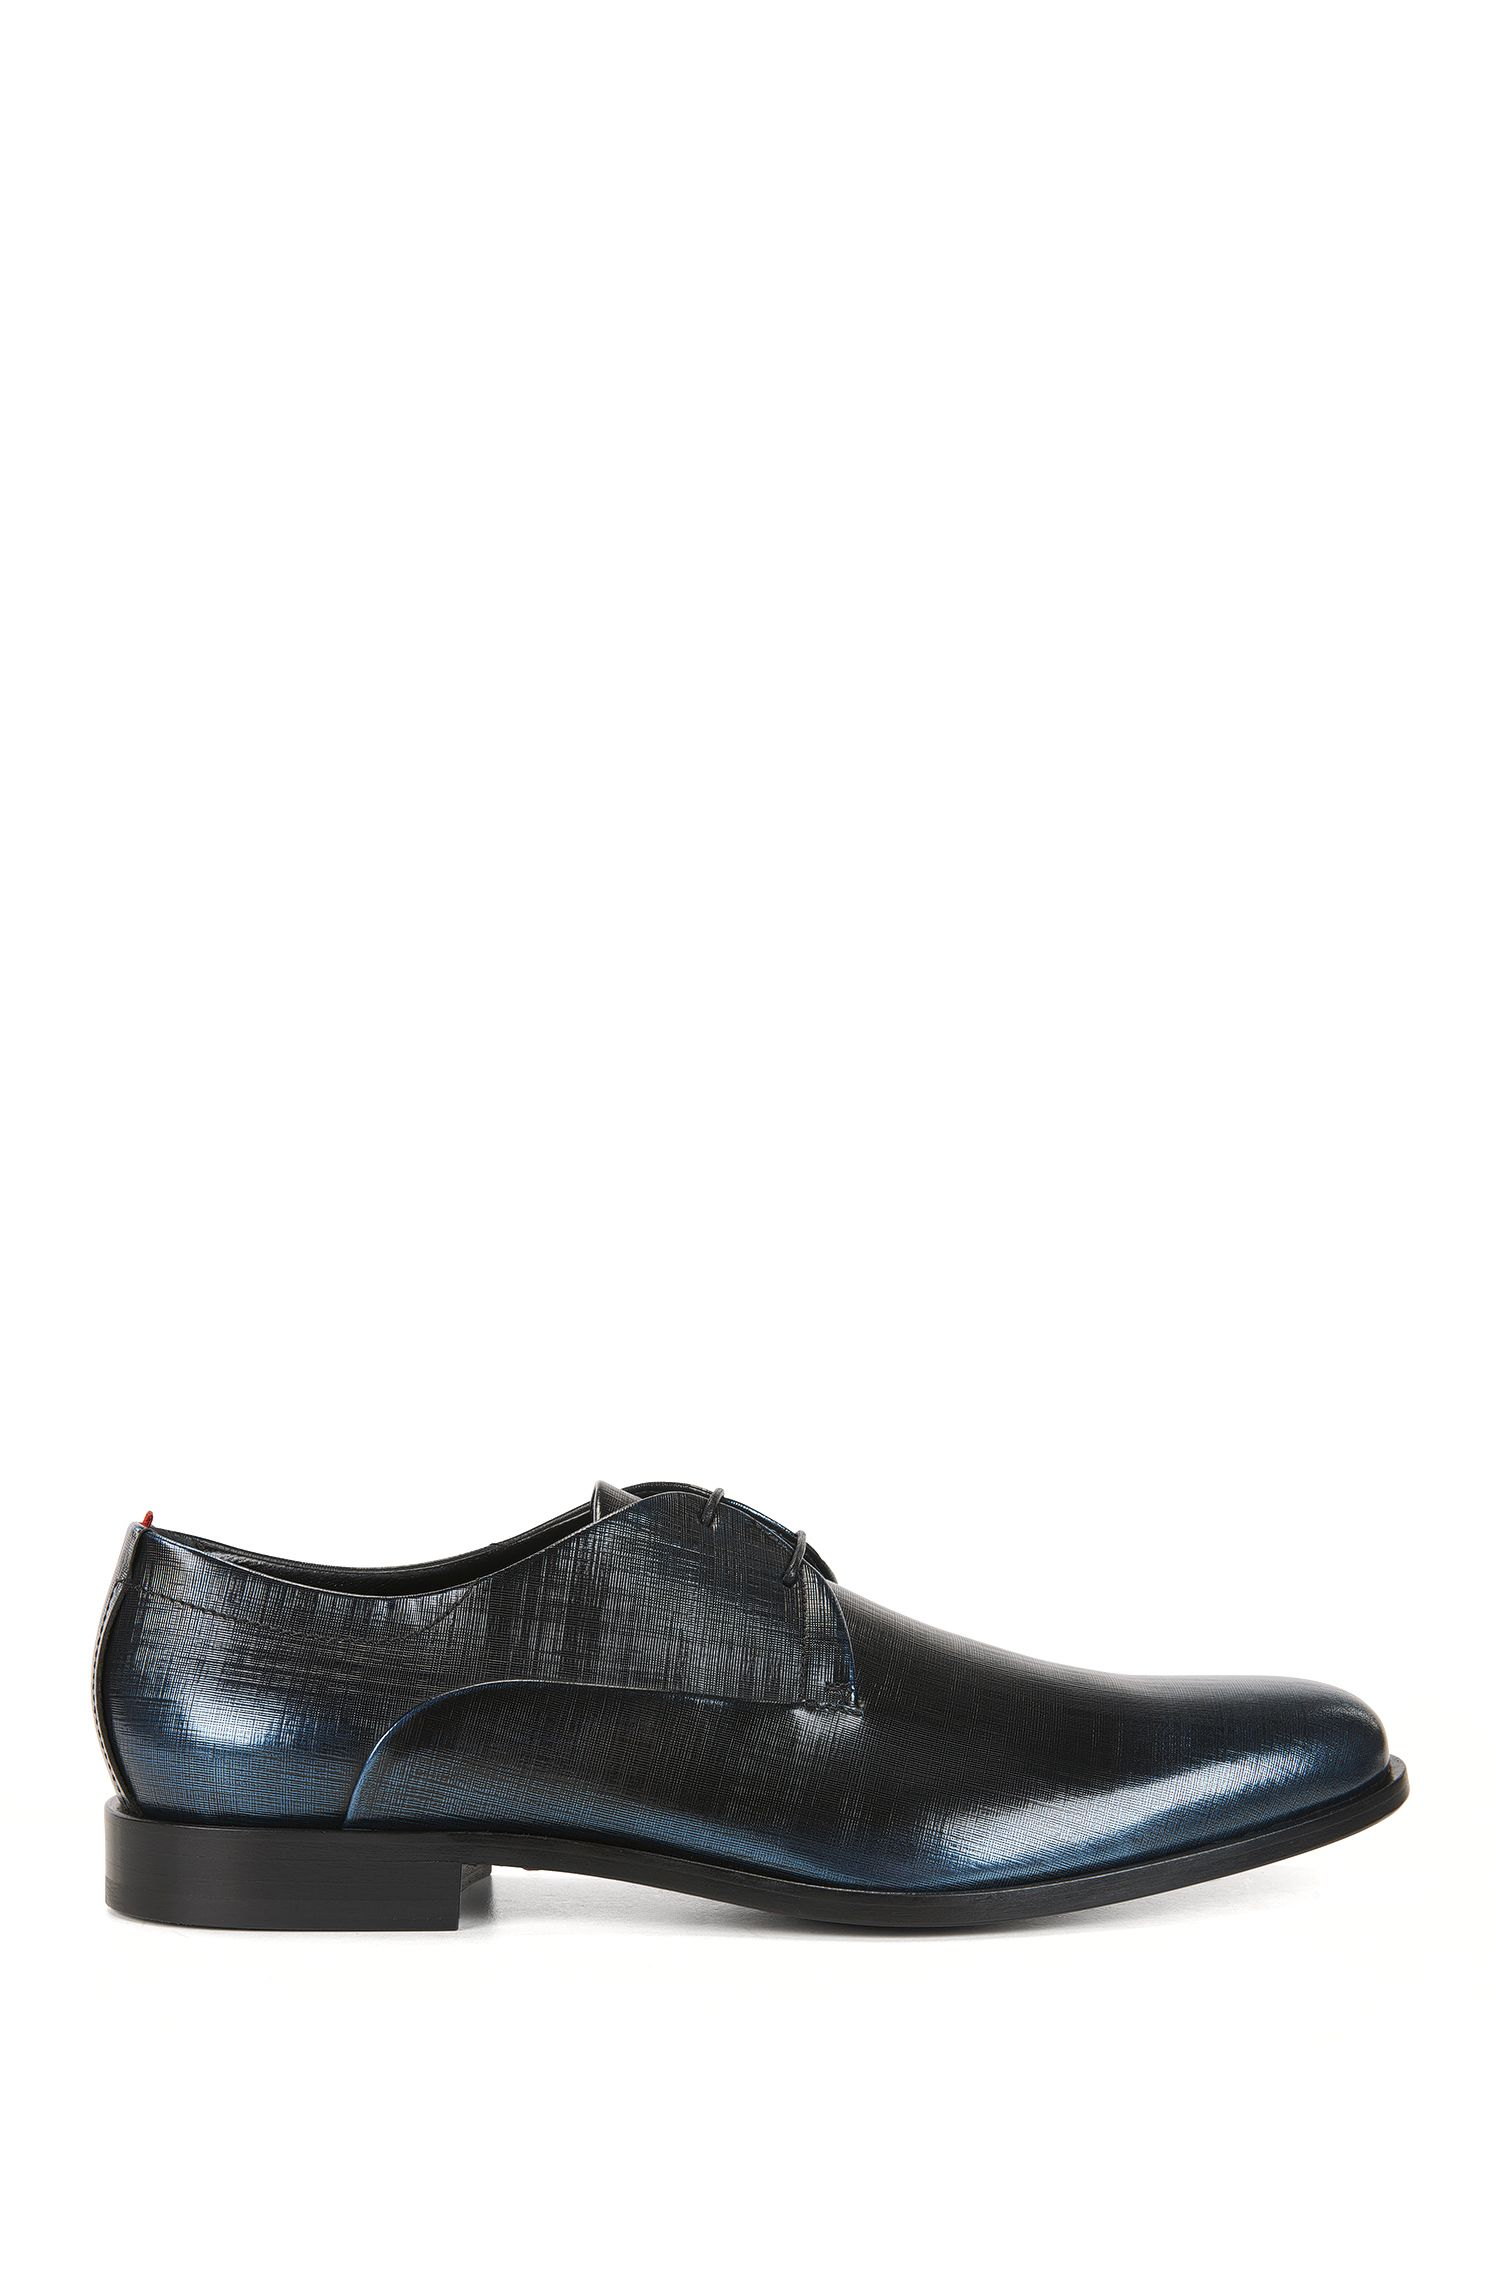 Derby shoes in embossed brush-off leather